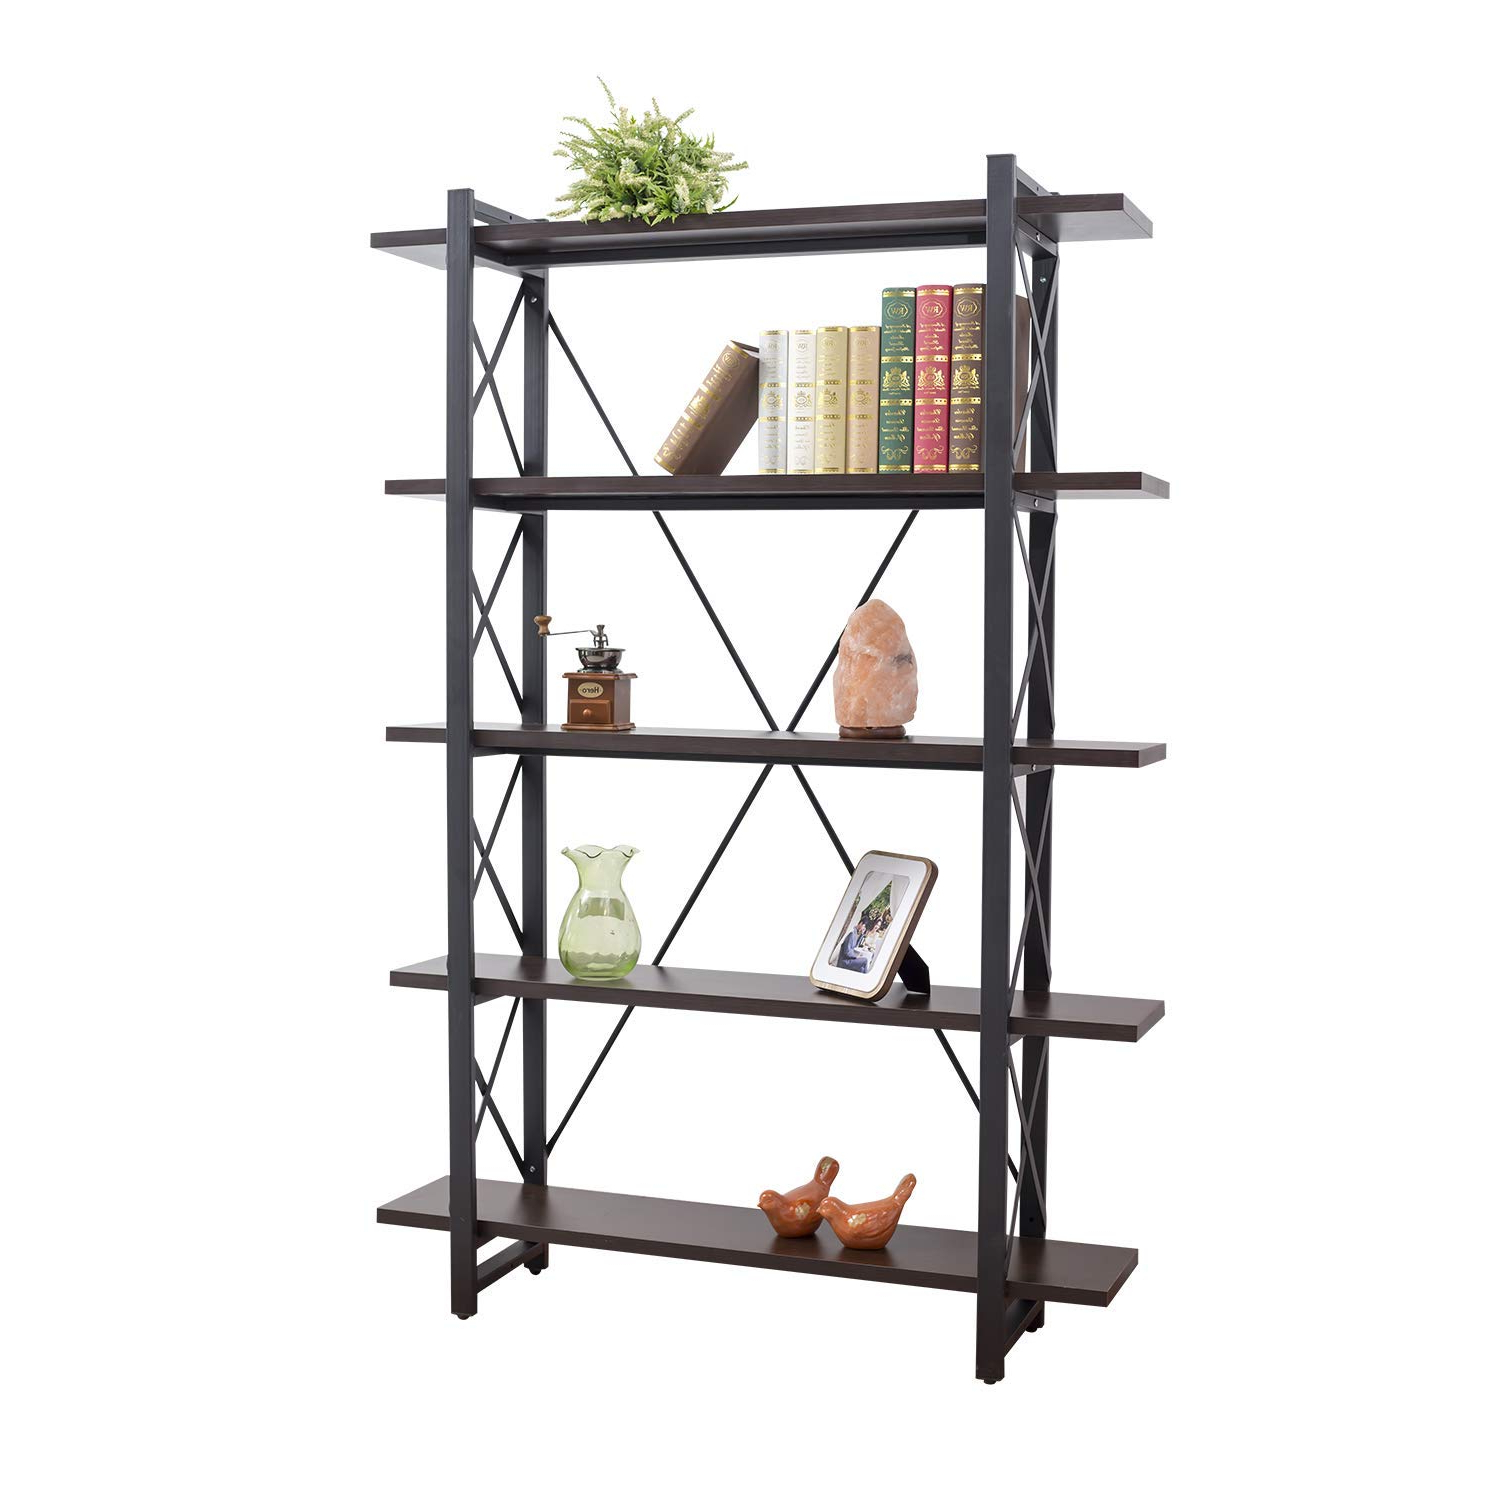 Newest Grace Tech 5 Tier Industrial Bookshelf Etagere Bookcase Wood And Metal Book Shelves Furniture Black With Rech 4 Tier Etagere Bookcases (Gallery 4 of 20)